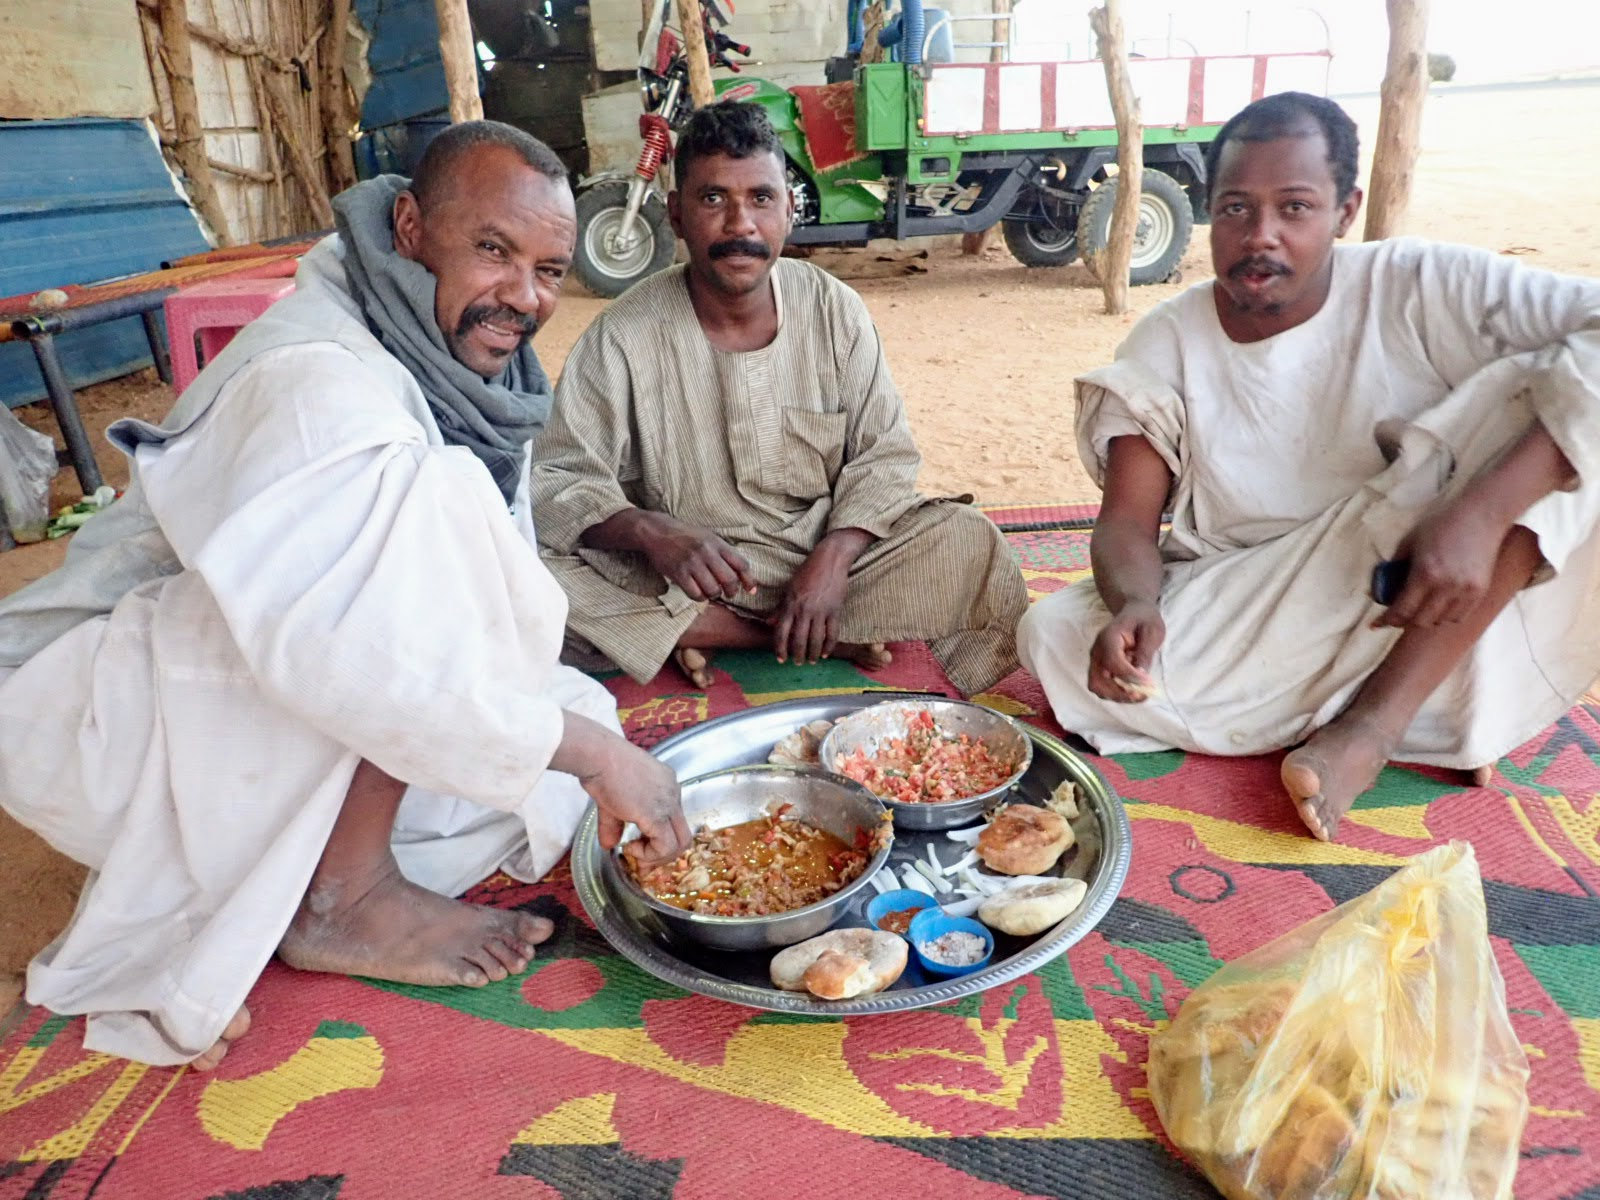 Sudanese men sharing food